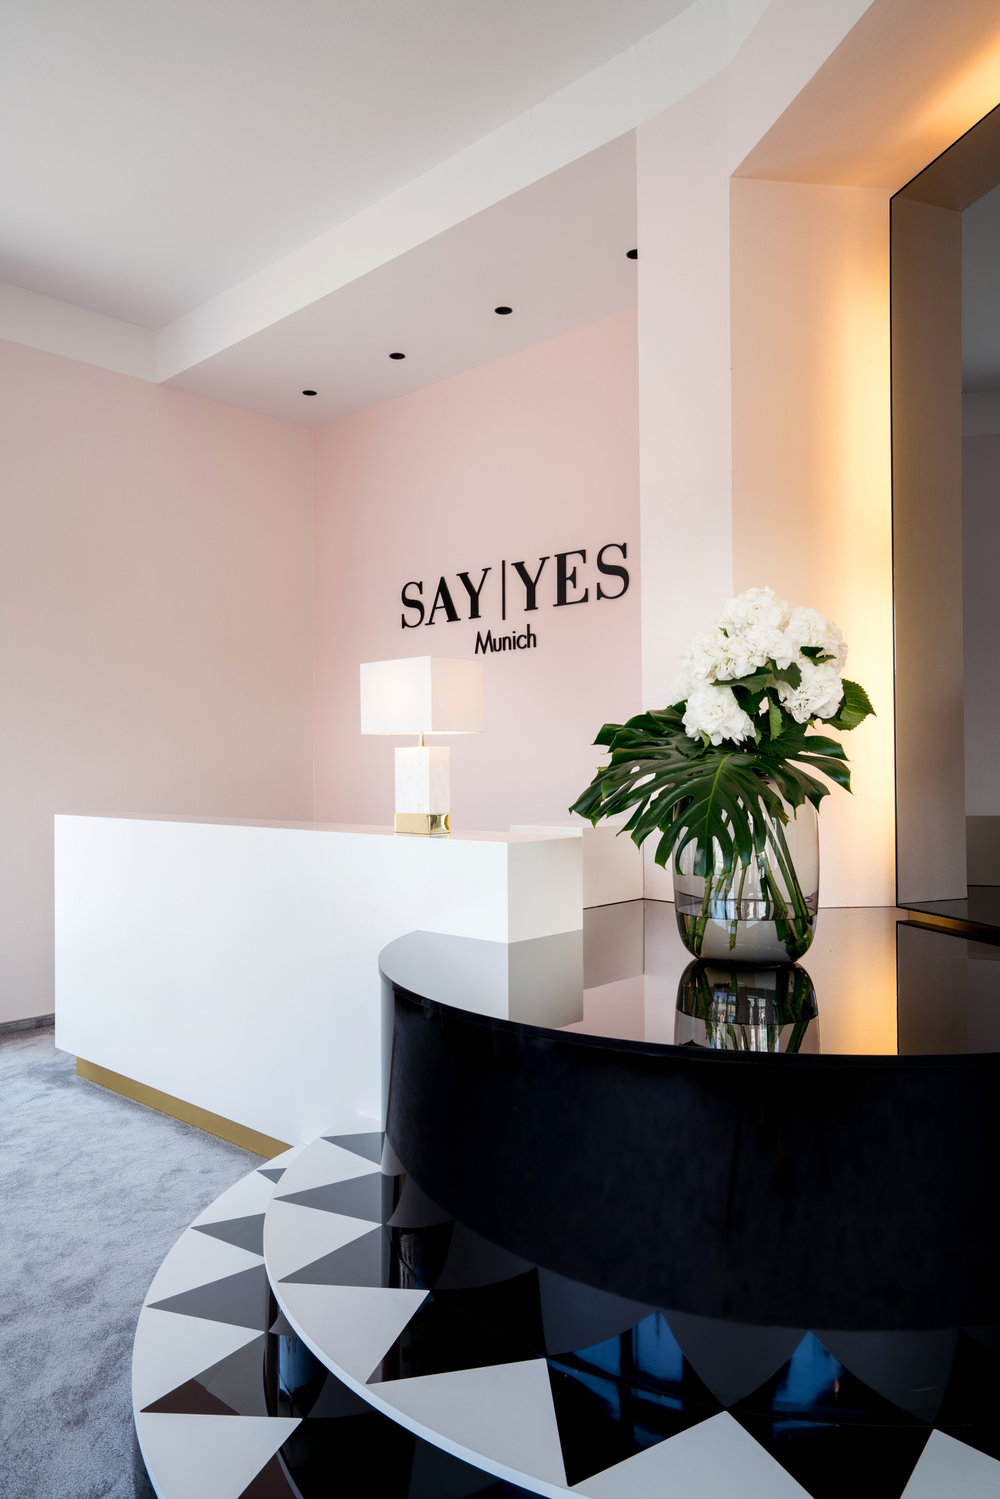 SEBASTIAN ZENKER INTERIOR DESIGN - SAY YES BOUTIQUE 6.jpg